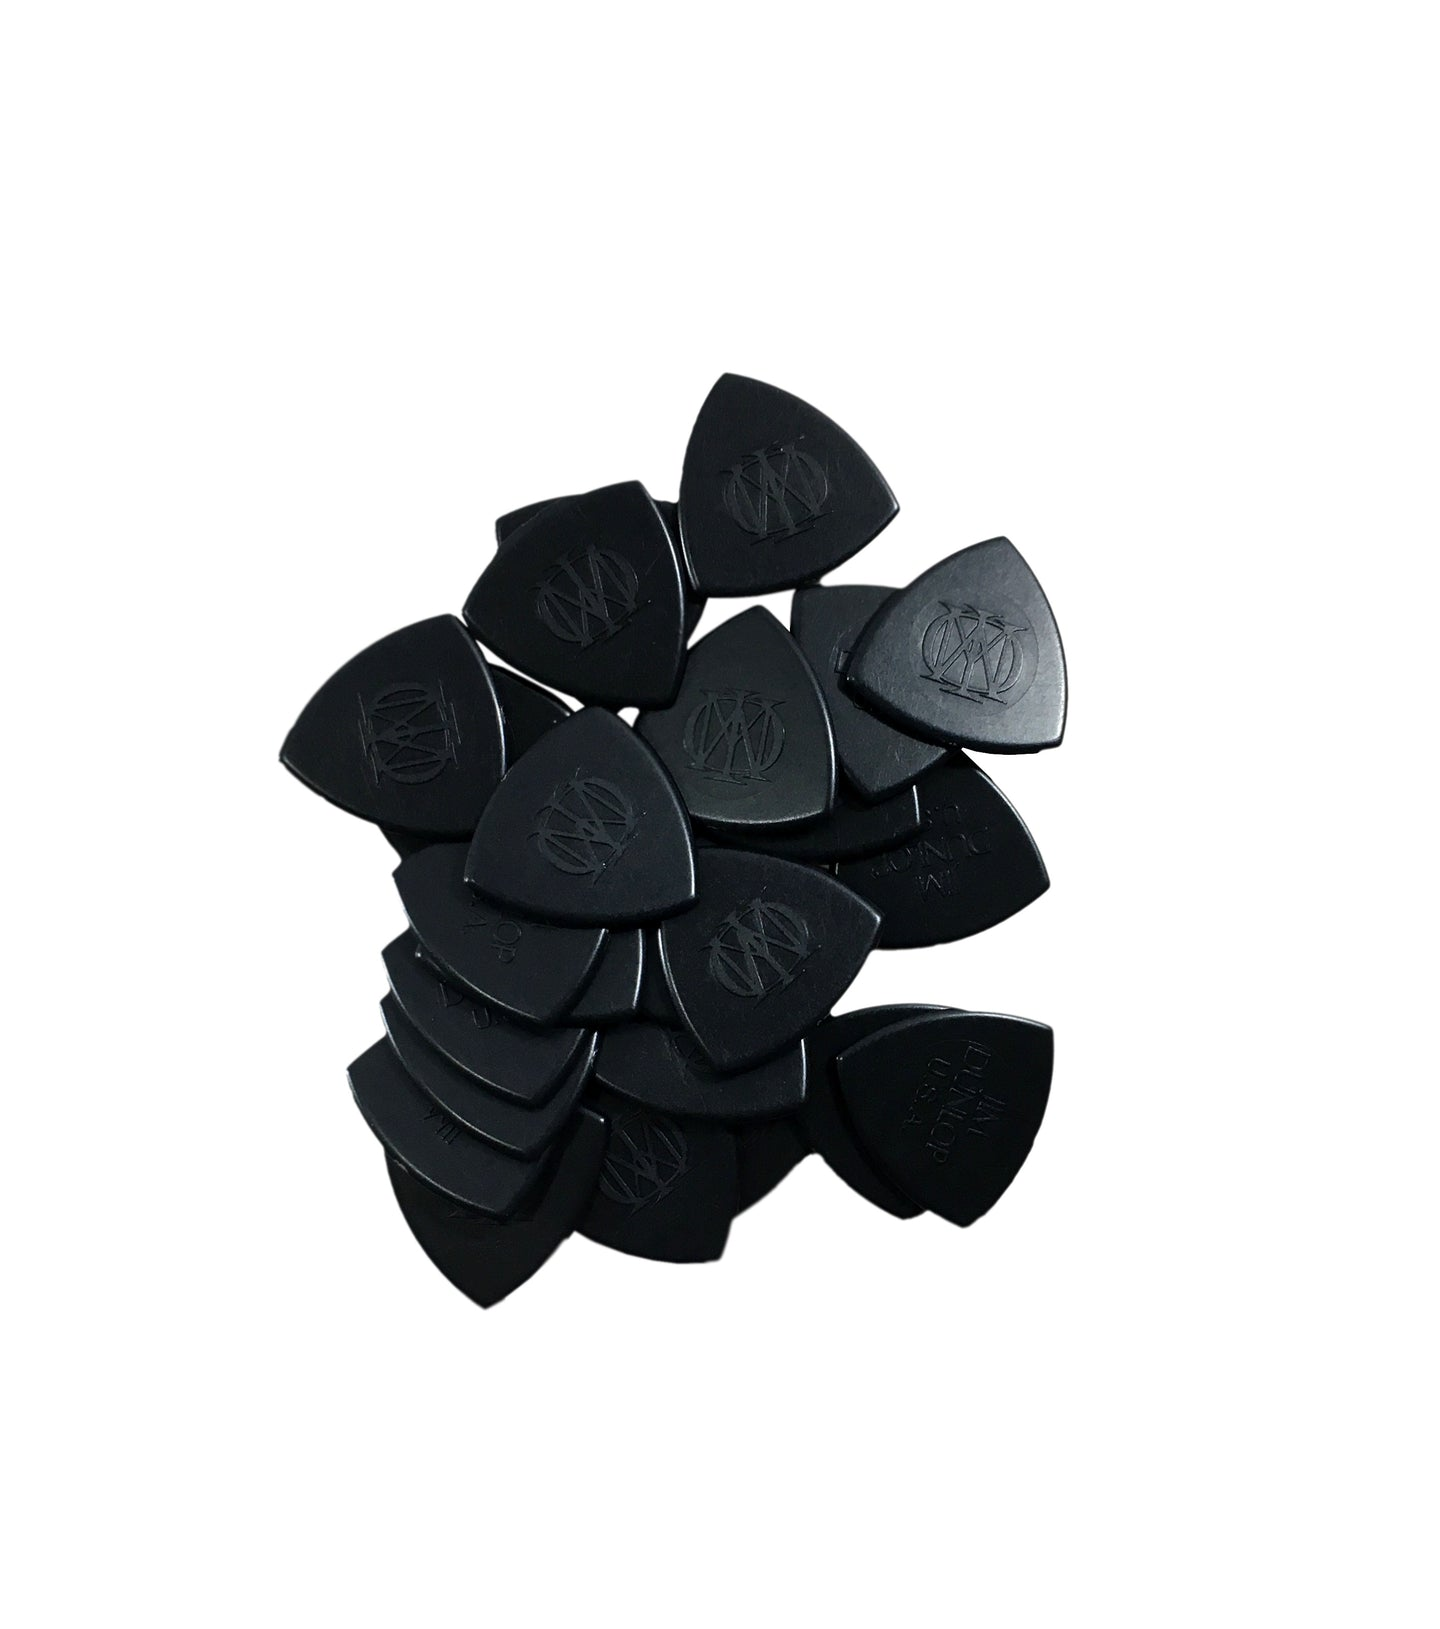 Dunlop Guitar Picks John Petrucci Trinity Pick 24 Picks 1.4mm.